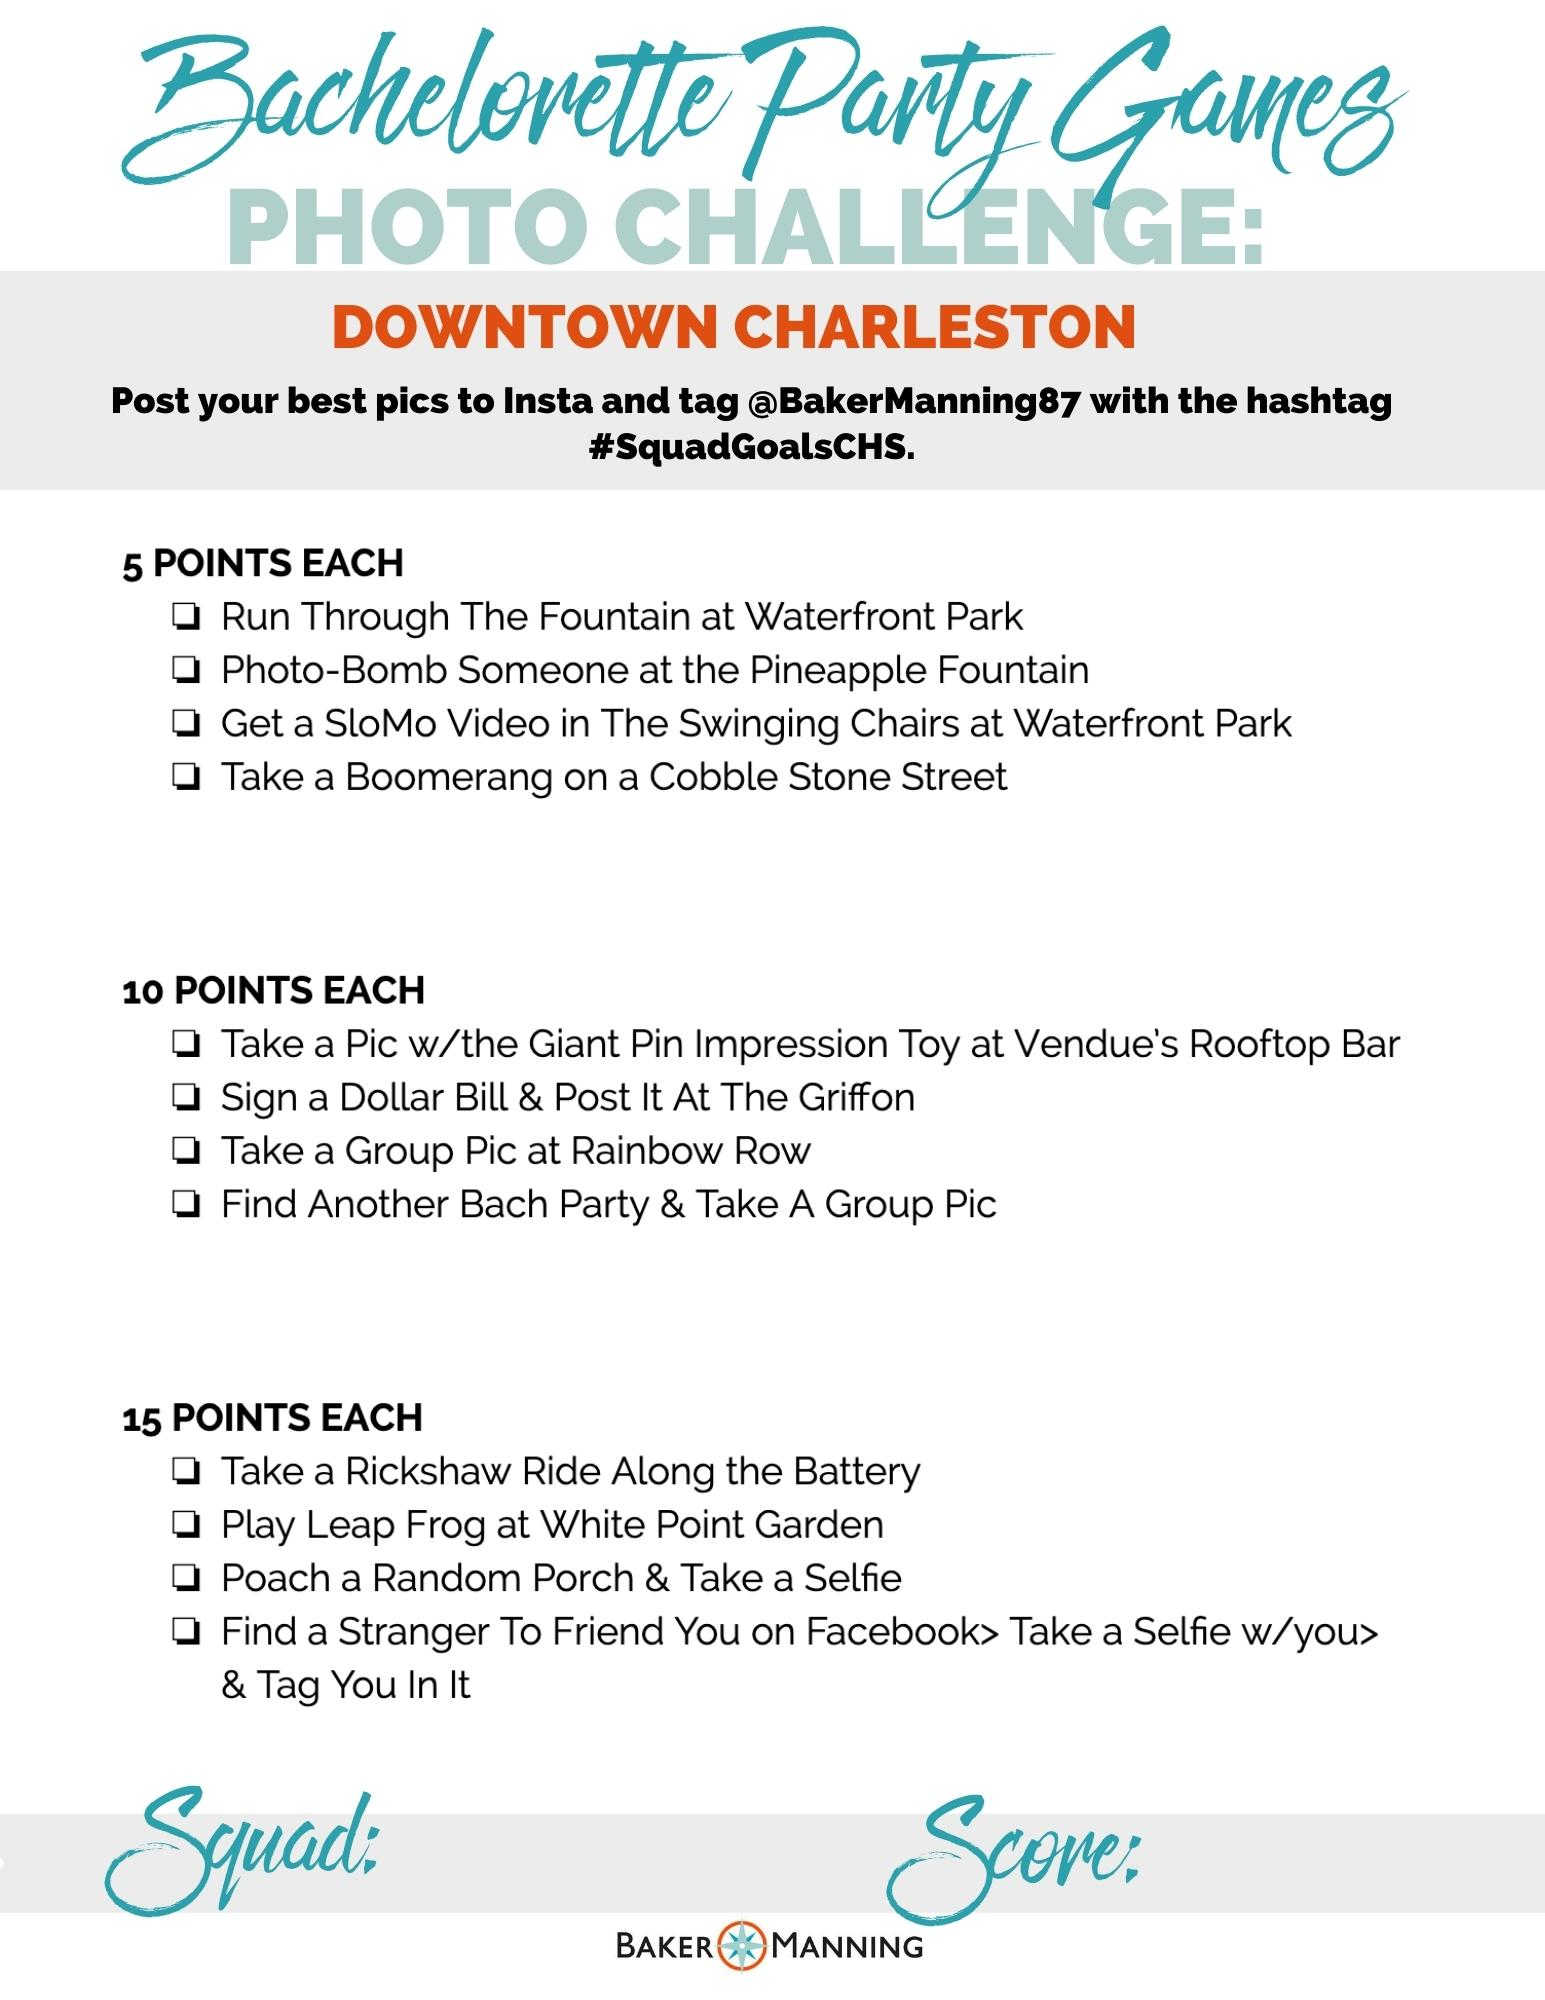 Charleston bachelorette party games, downtown charleston sc things to do.